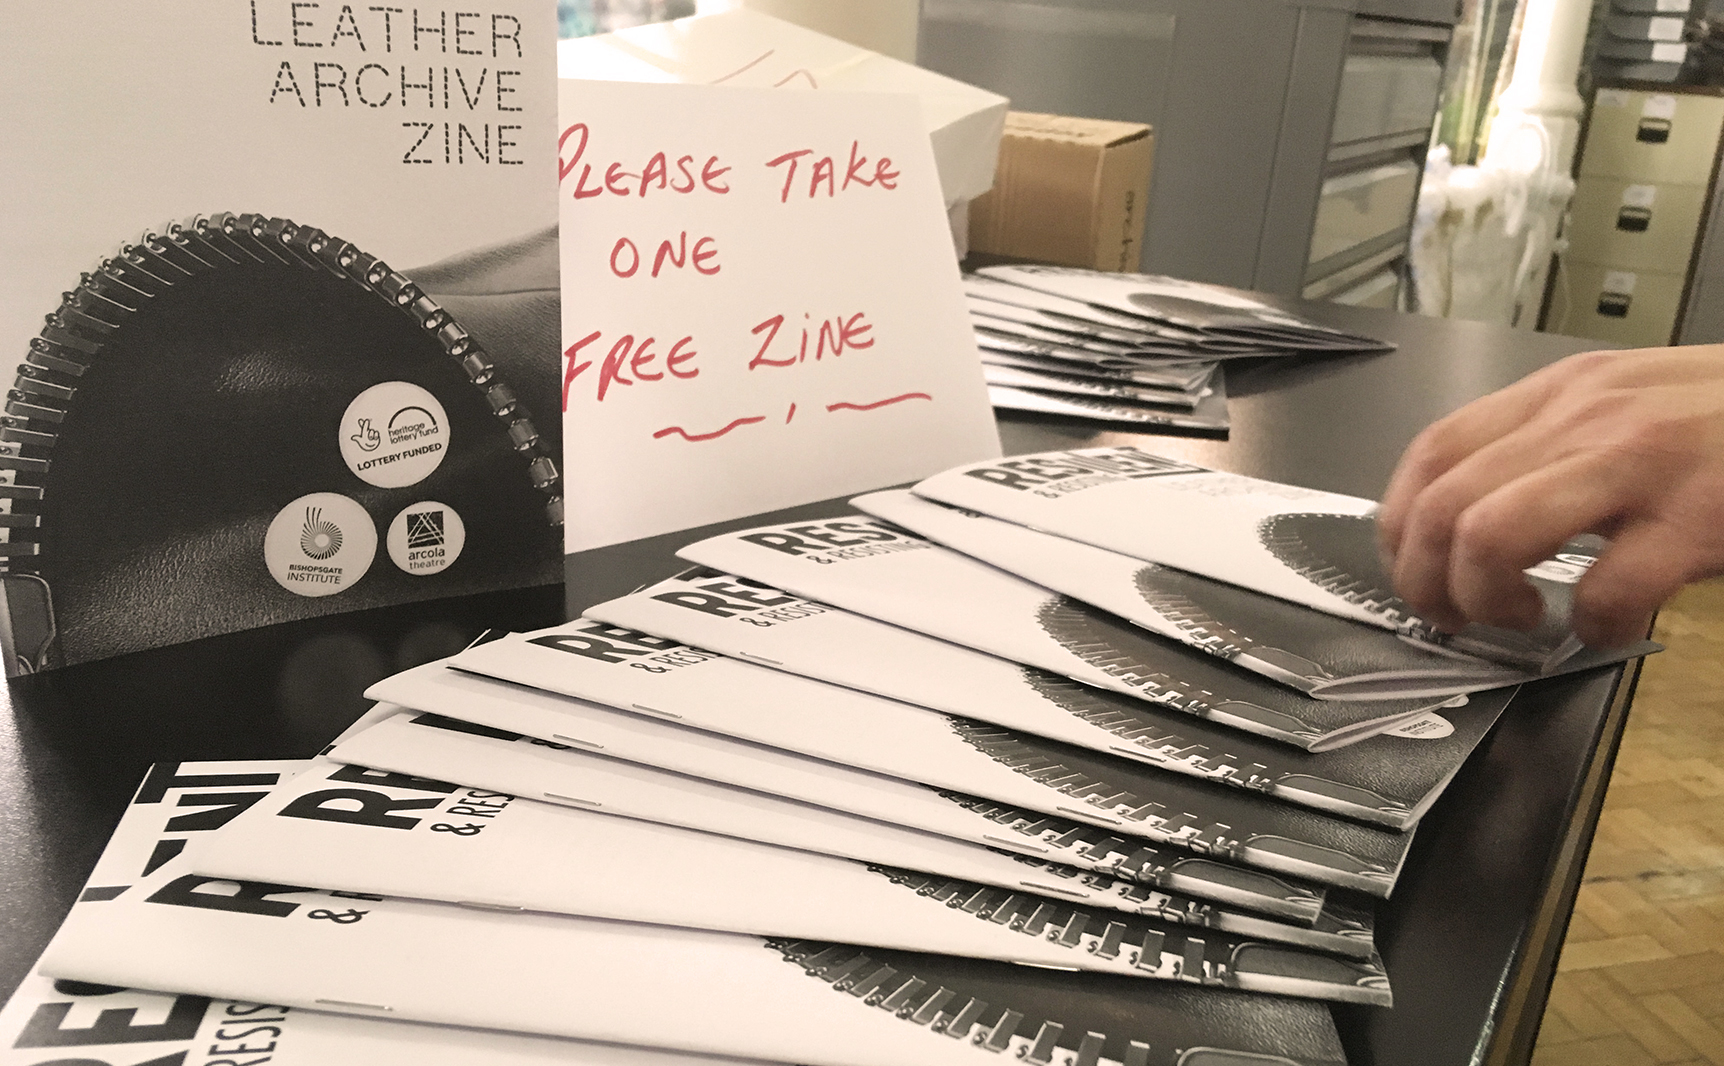 A table full of Leather Archive zines, from the event at the Bishopsgate Institute